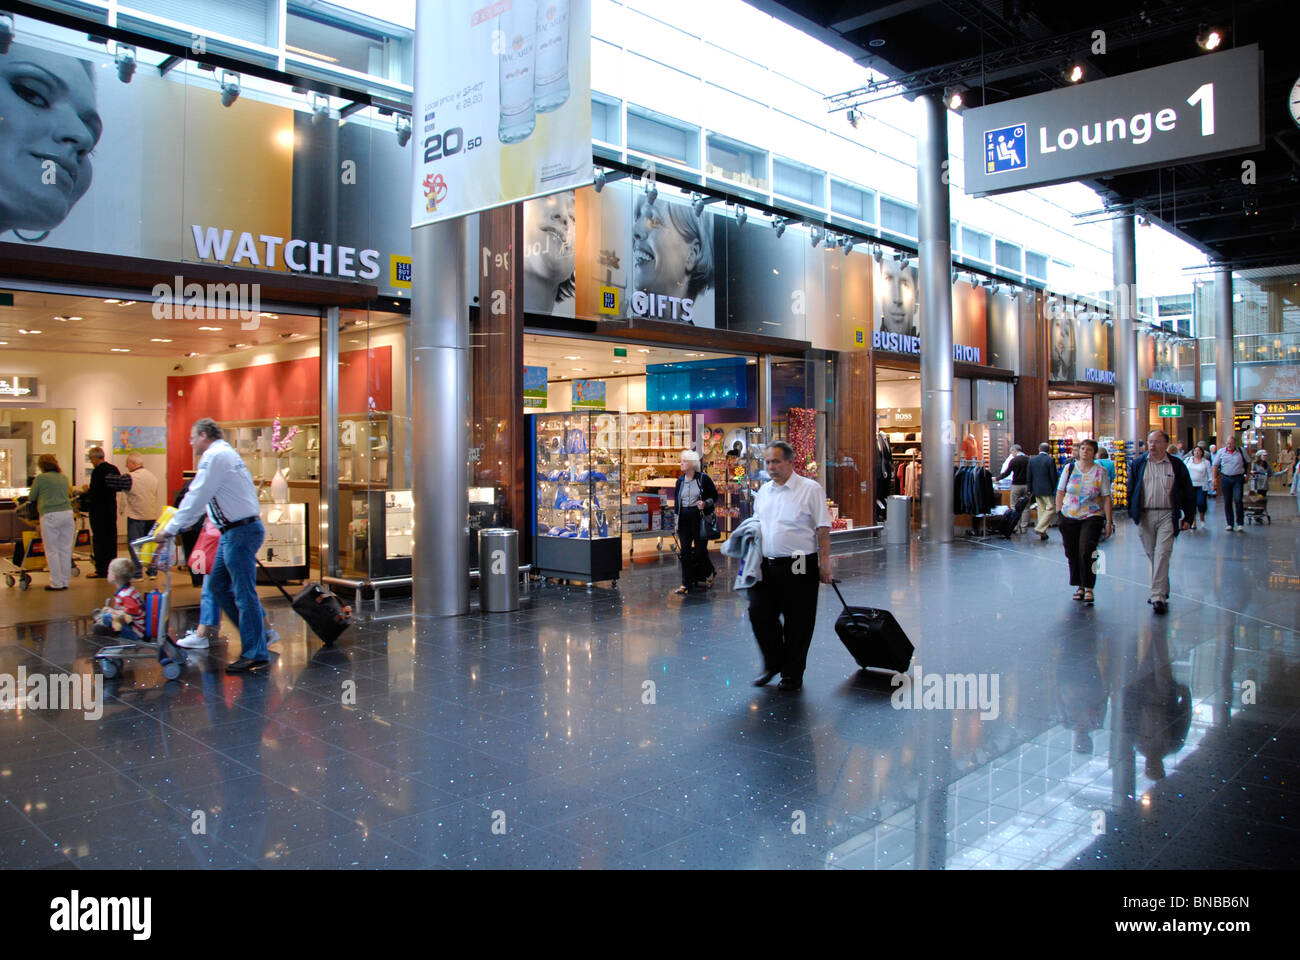 Boutique Free Tours Amsterdam Netherlands Schiphol Airport People Travel Duty